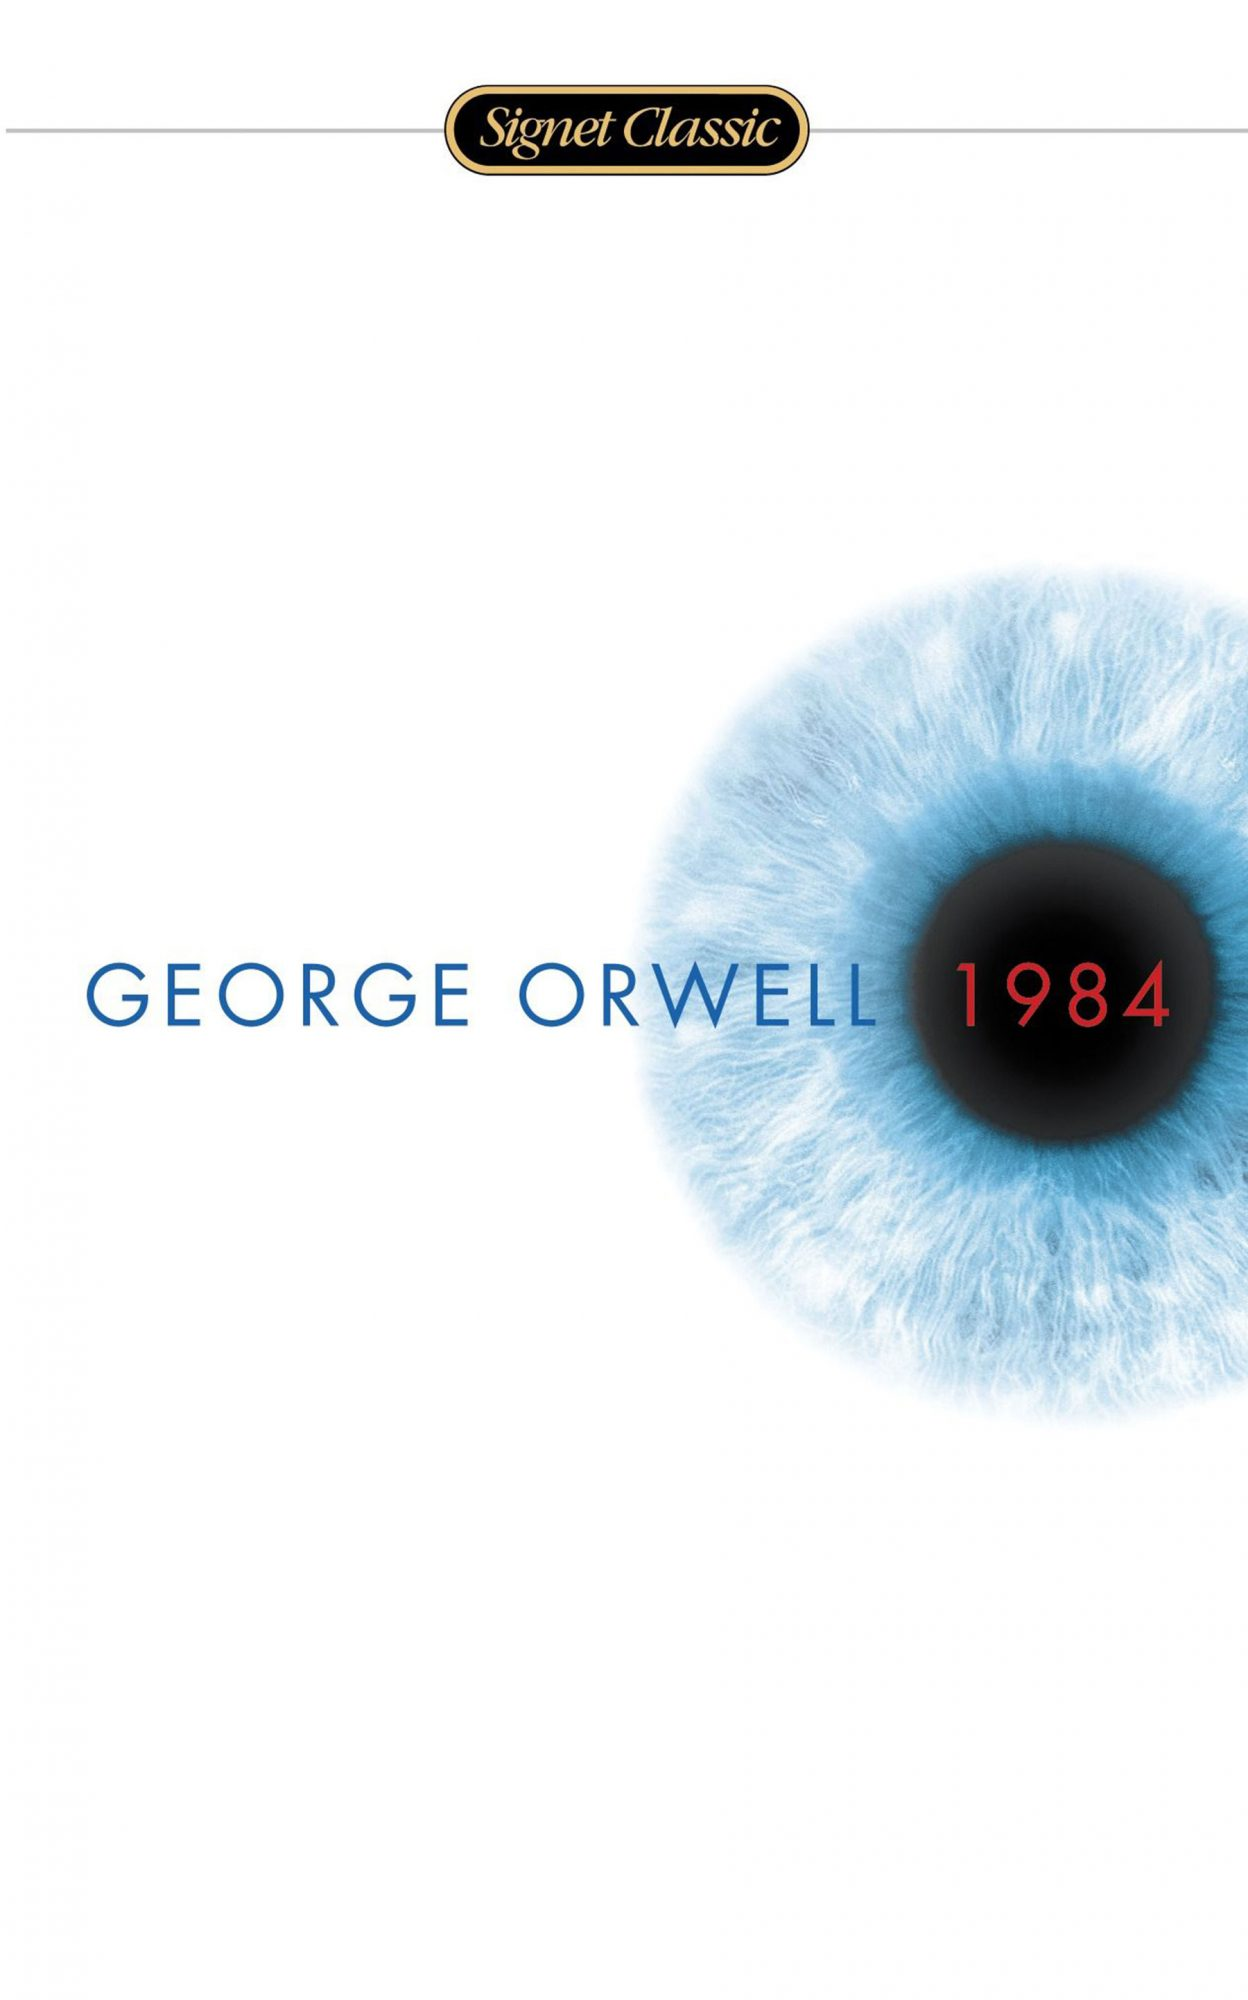 1984 - 60th Anniversary Edition - Paperbackby George Orwell